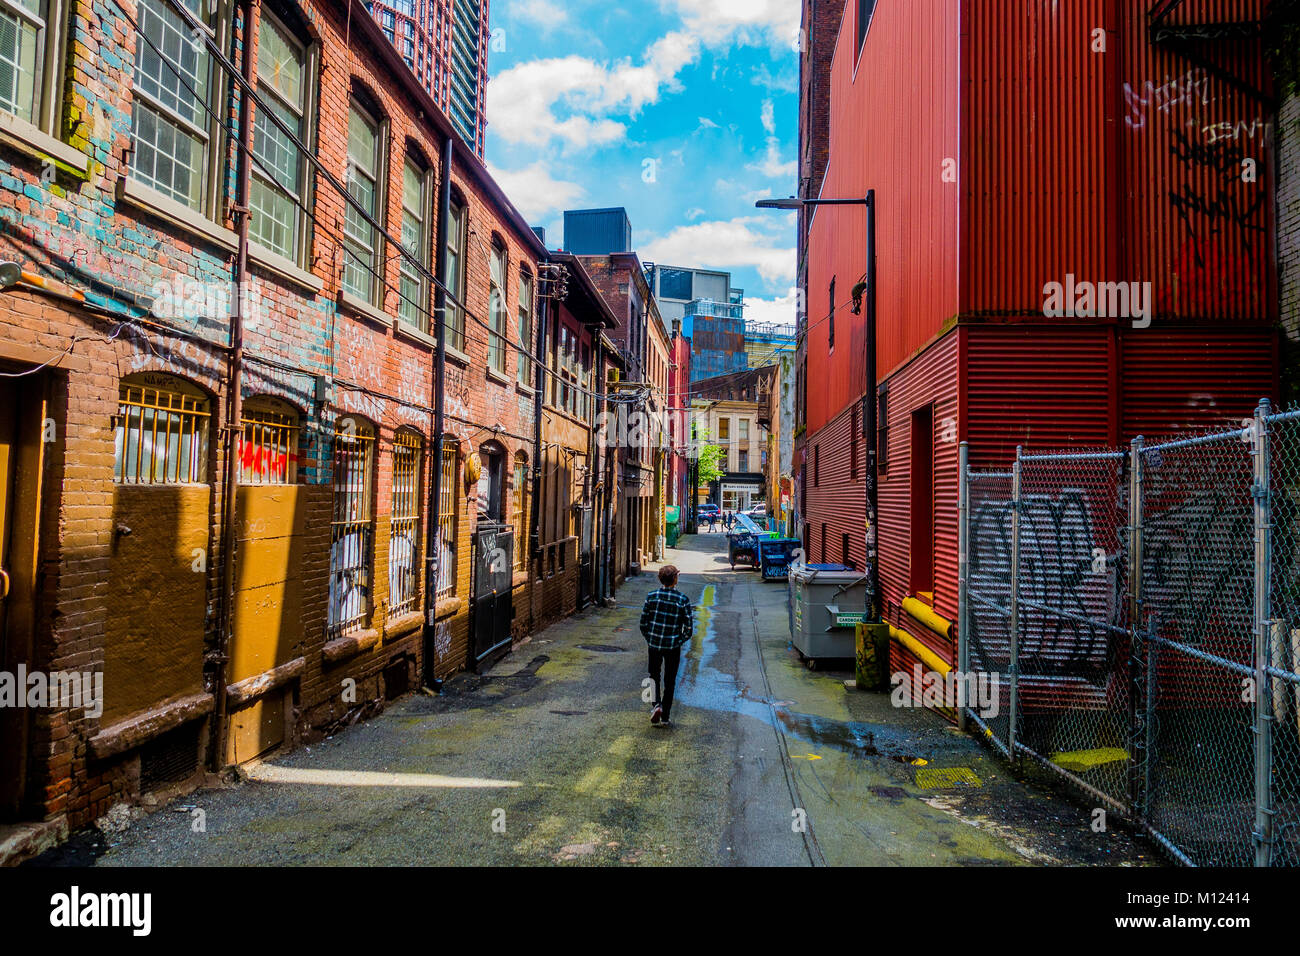 Exploring the city - Stock Image